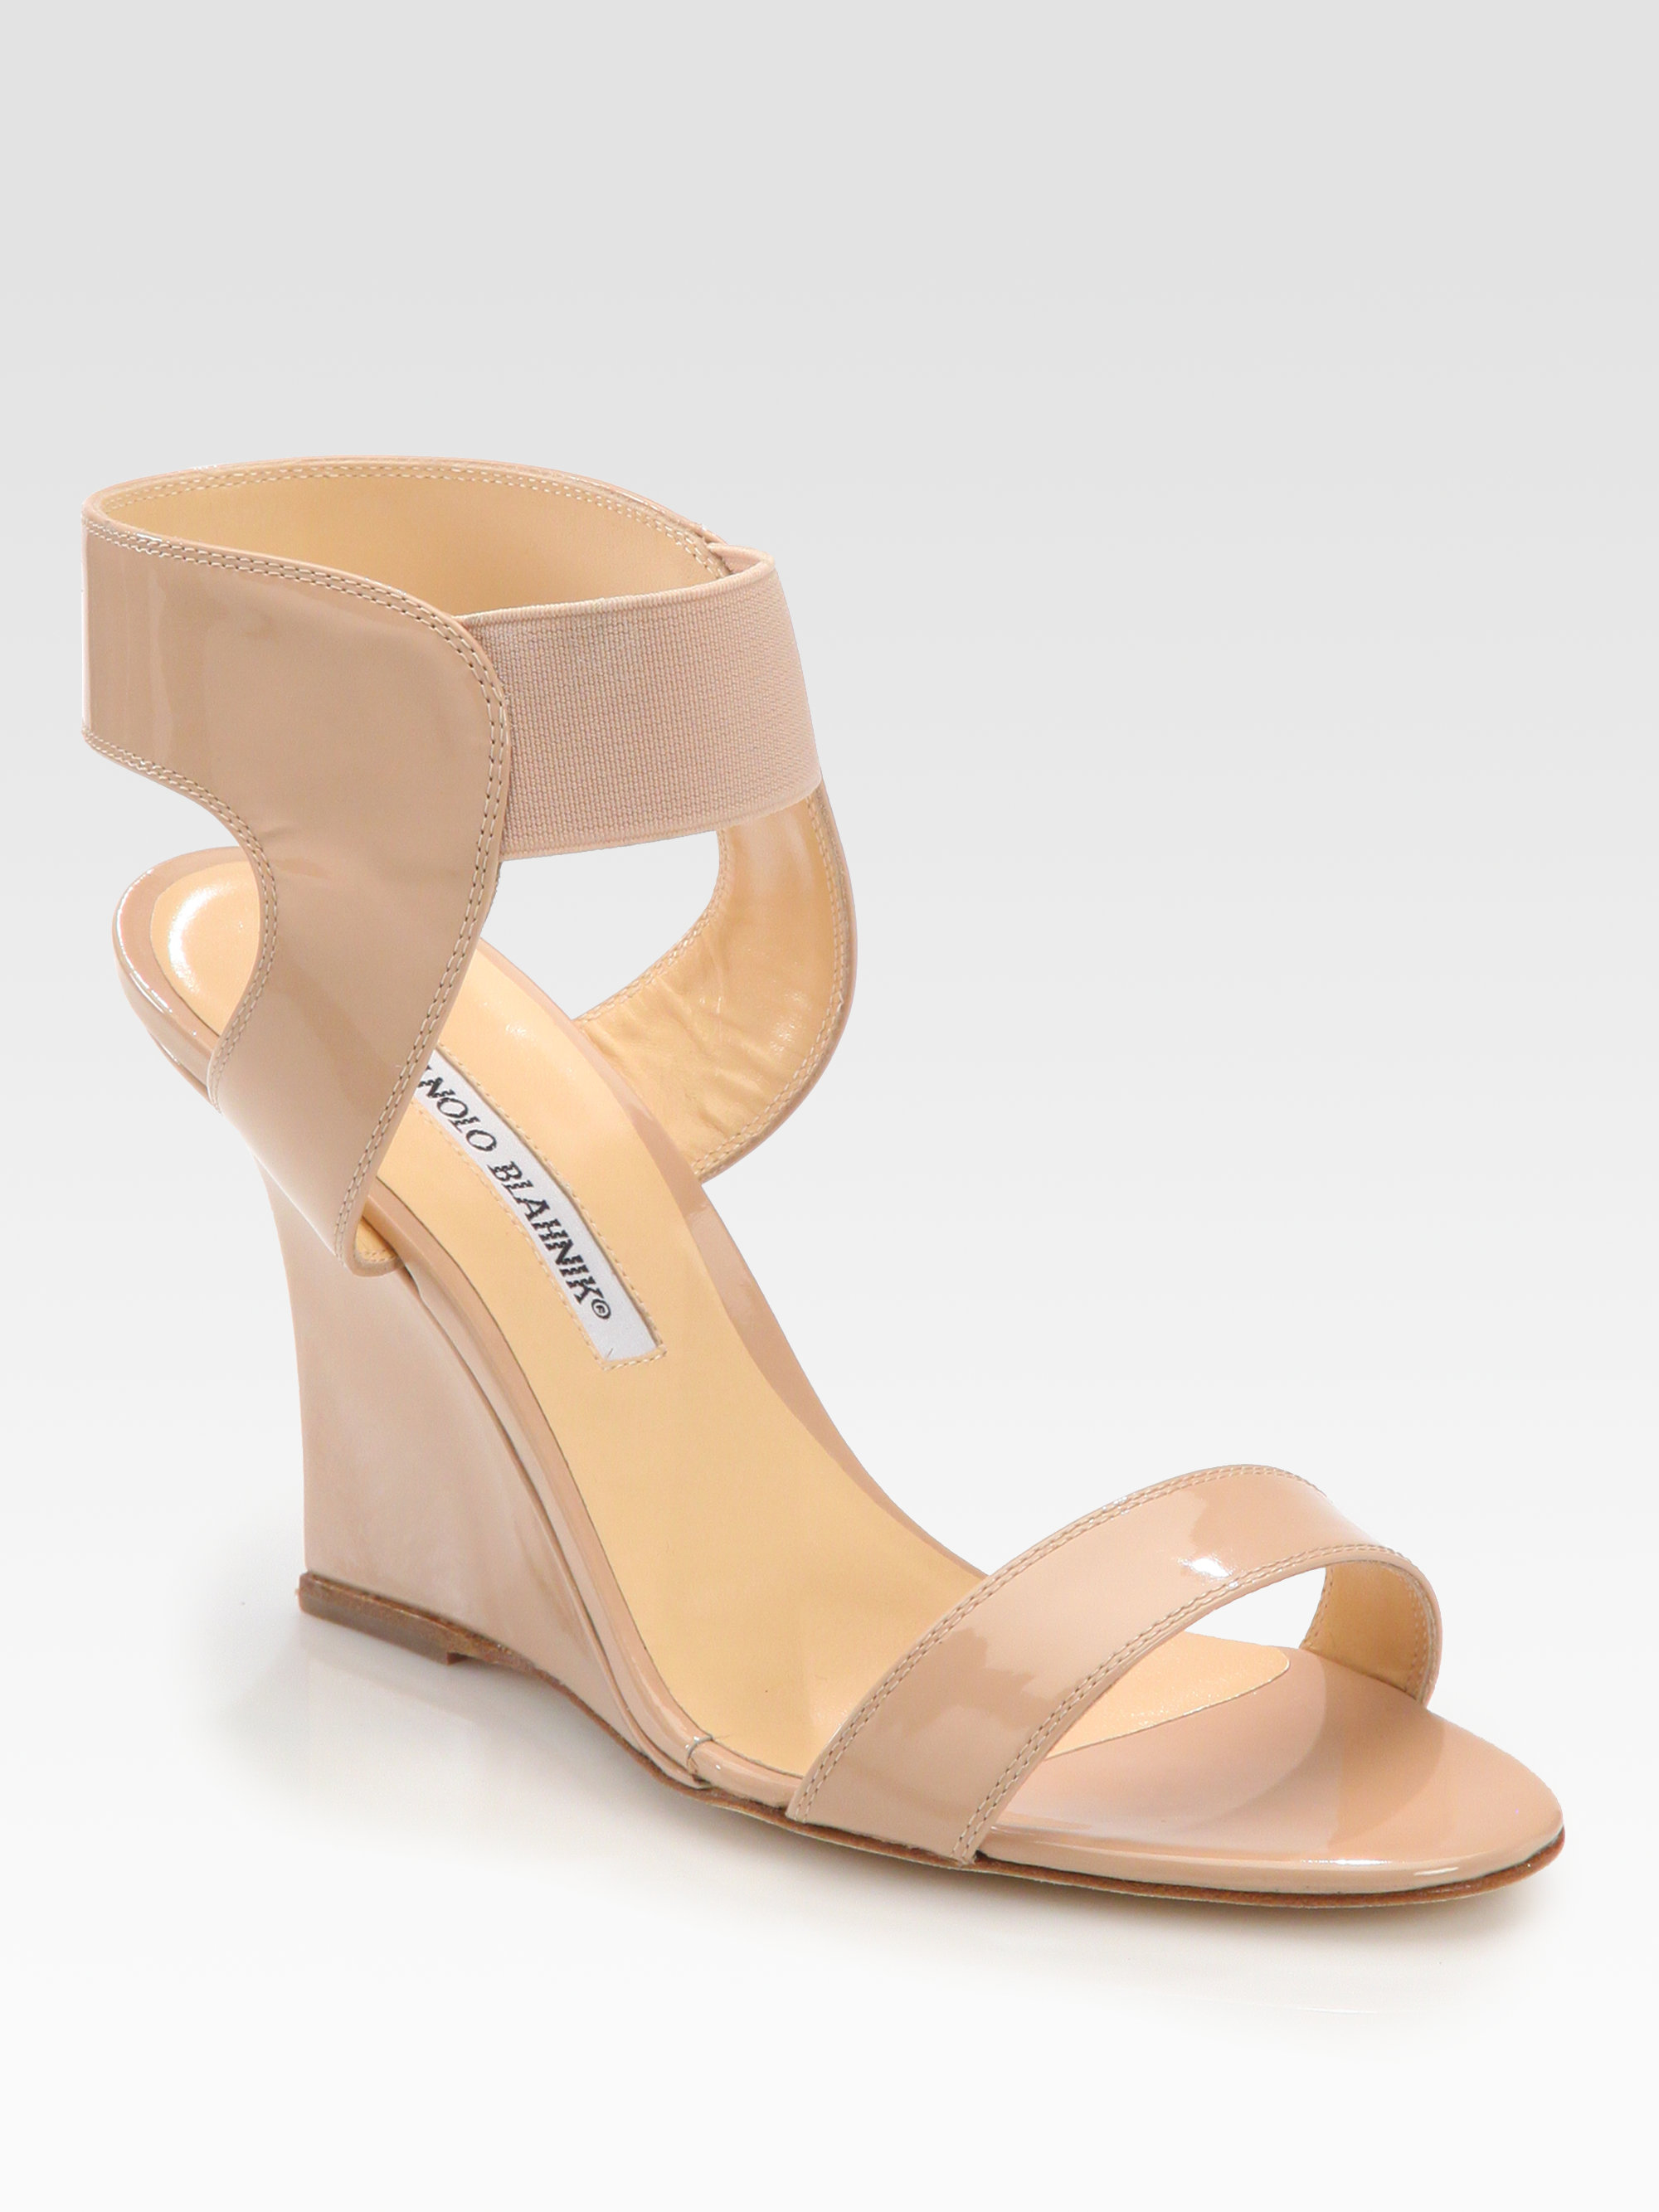 ffd24880d405c Manolo Blahnik Pepewe Patent Leather Wedge Sandals in Natural - Lyst